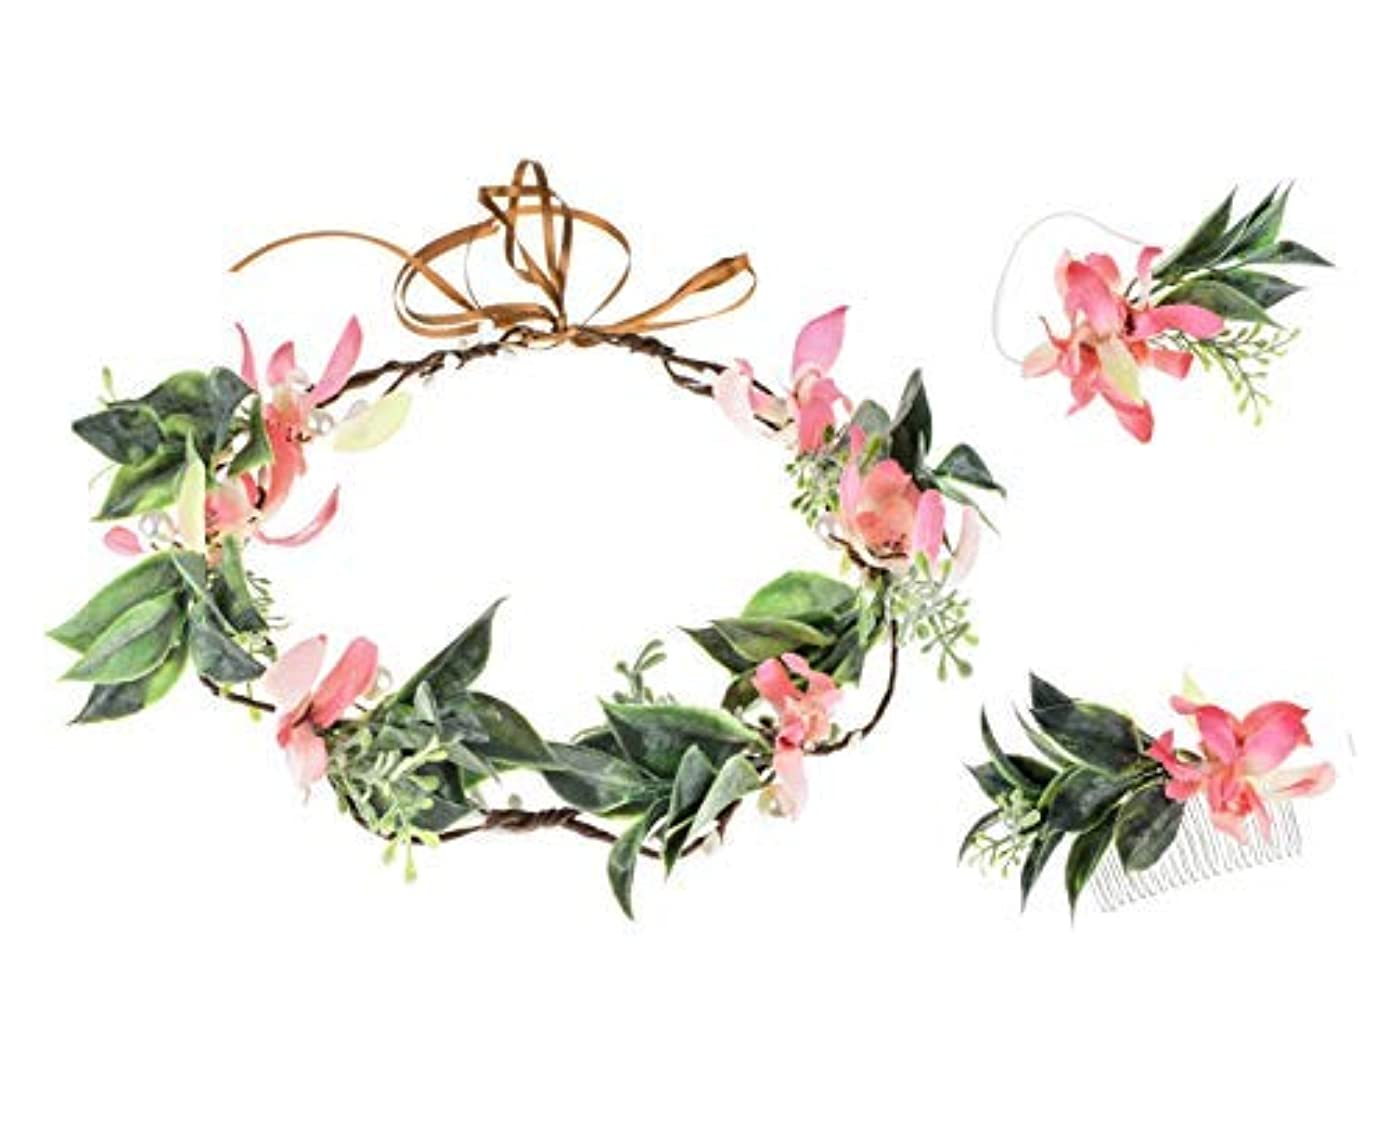 状況協力するコックFloral Fall Butterfly Orchid Flower Crown Hair Comb Green Leaf Wreath Bridal Wrist Flower Maternity Photo Props...